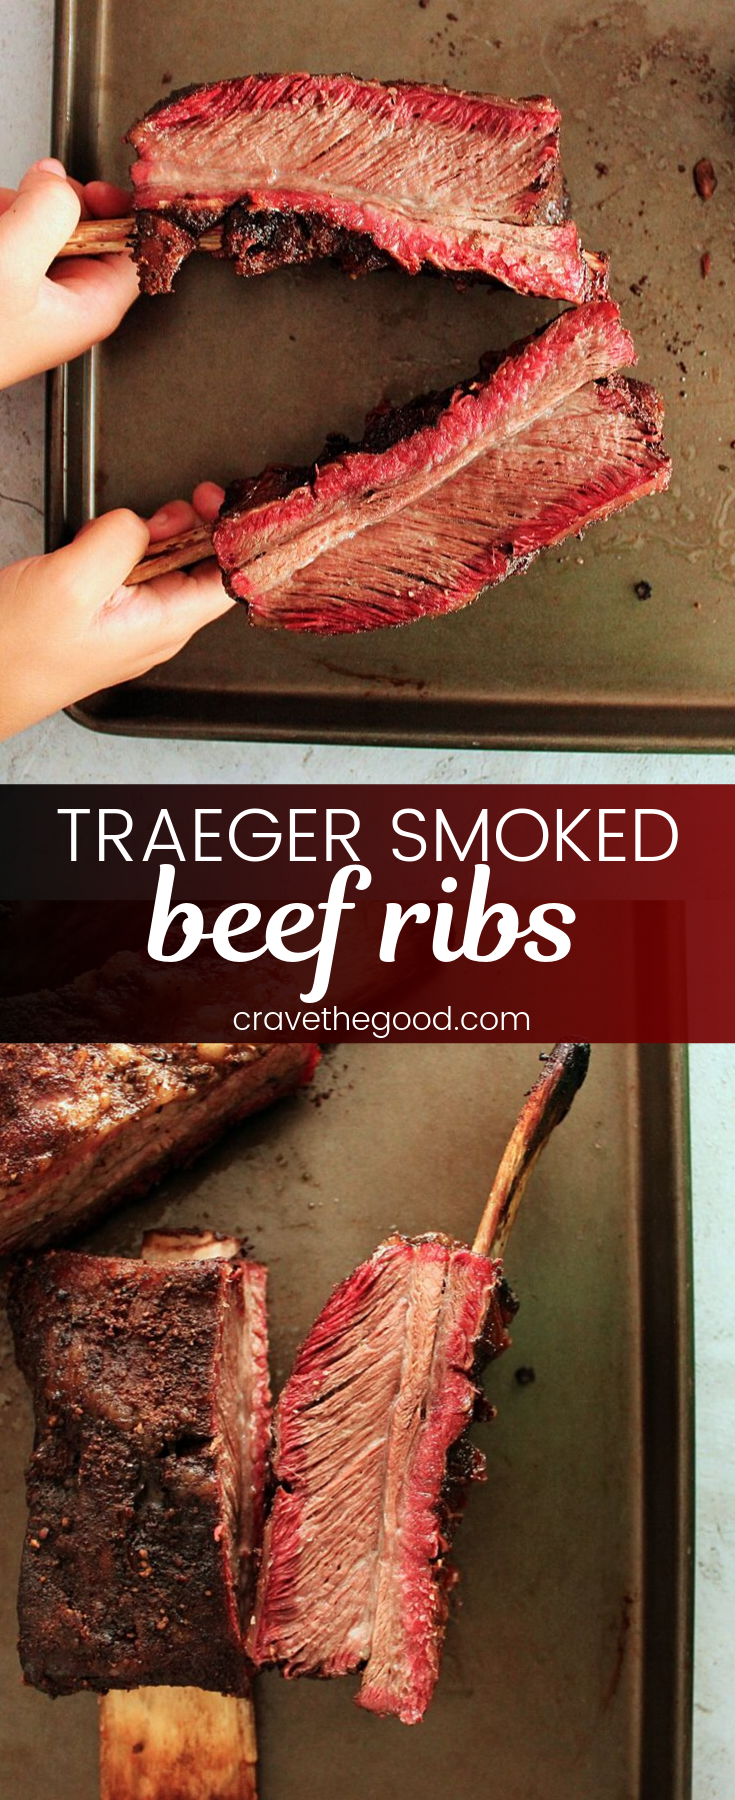 Smoked Flanken Style Beef Ribs Fast And Delicious Weber Grill Replacement Parts Recipe Smoked Beef Short Ribs Smoked Ribs Beef Ribs